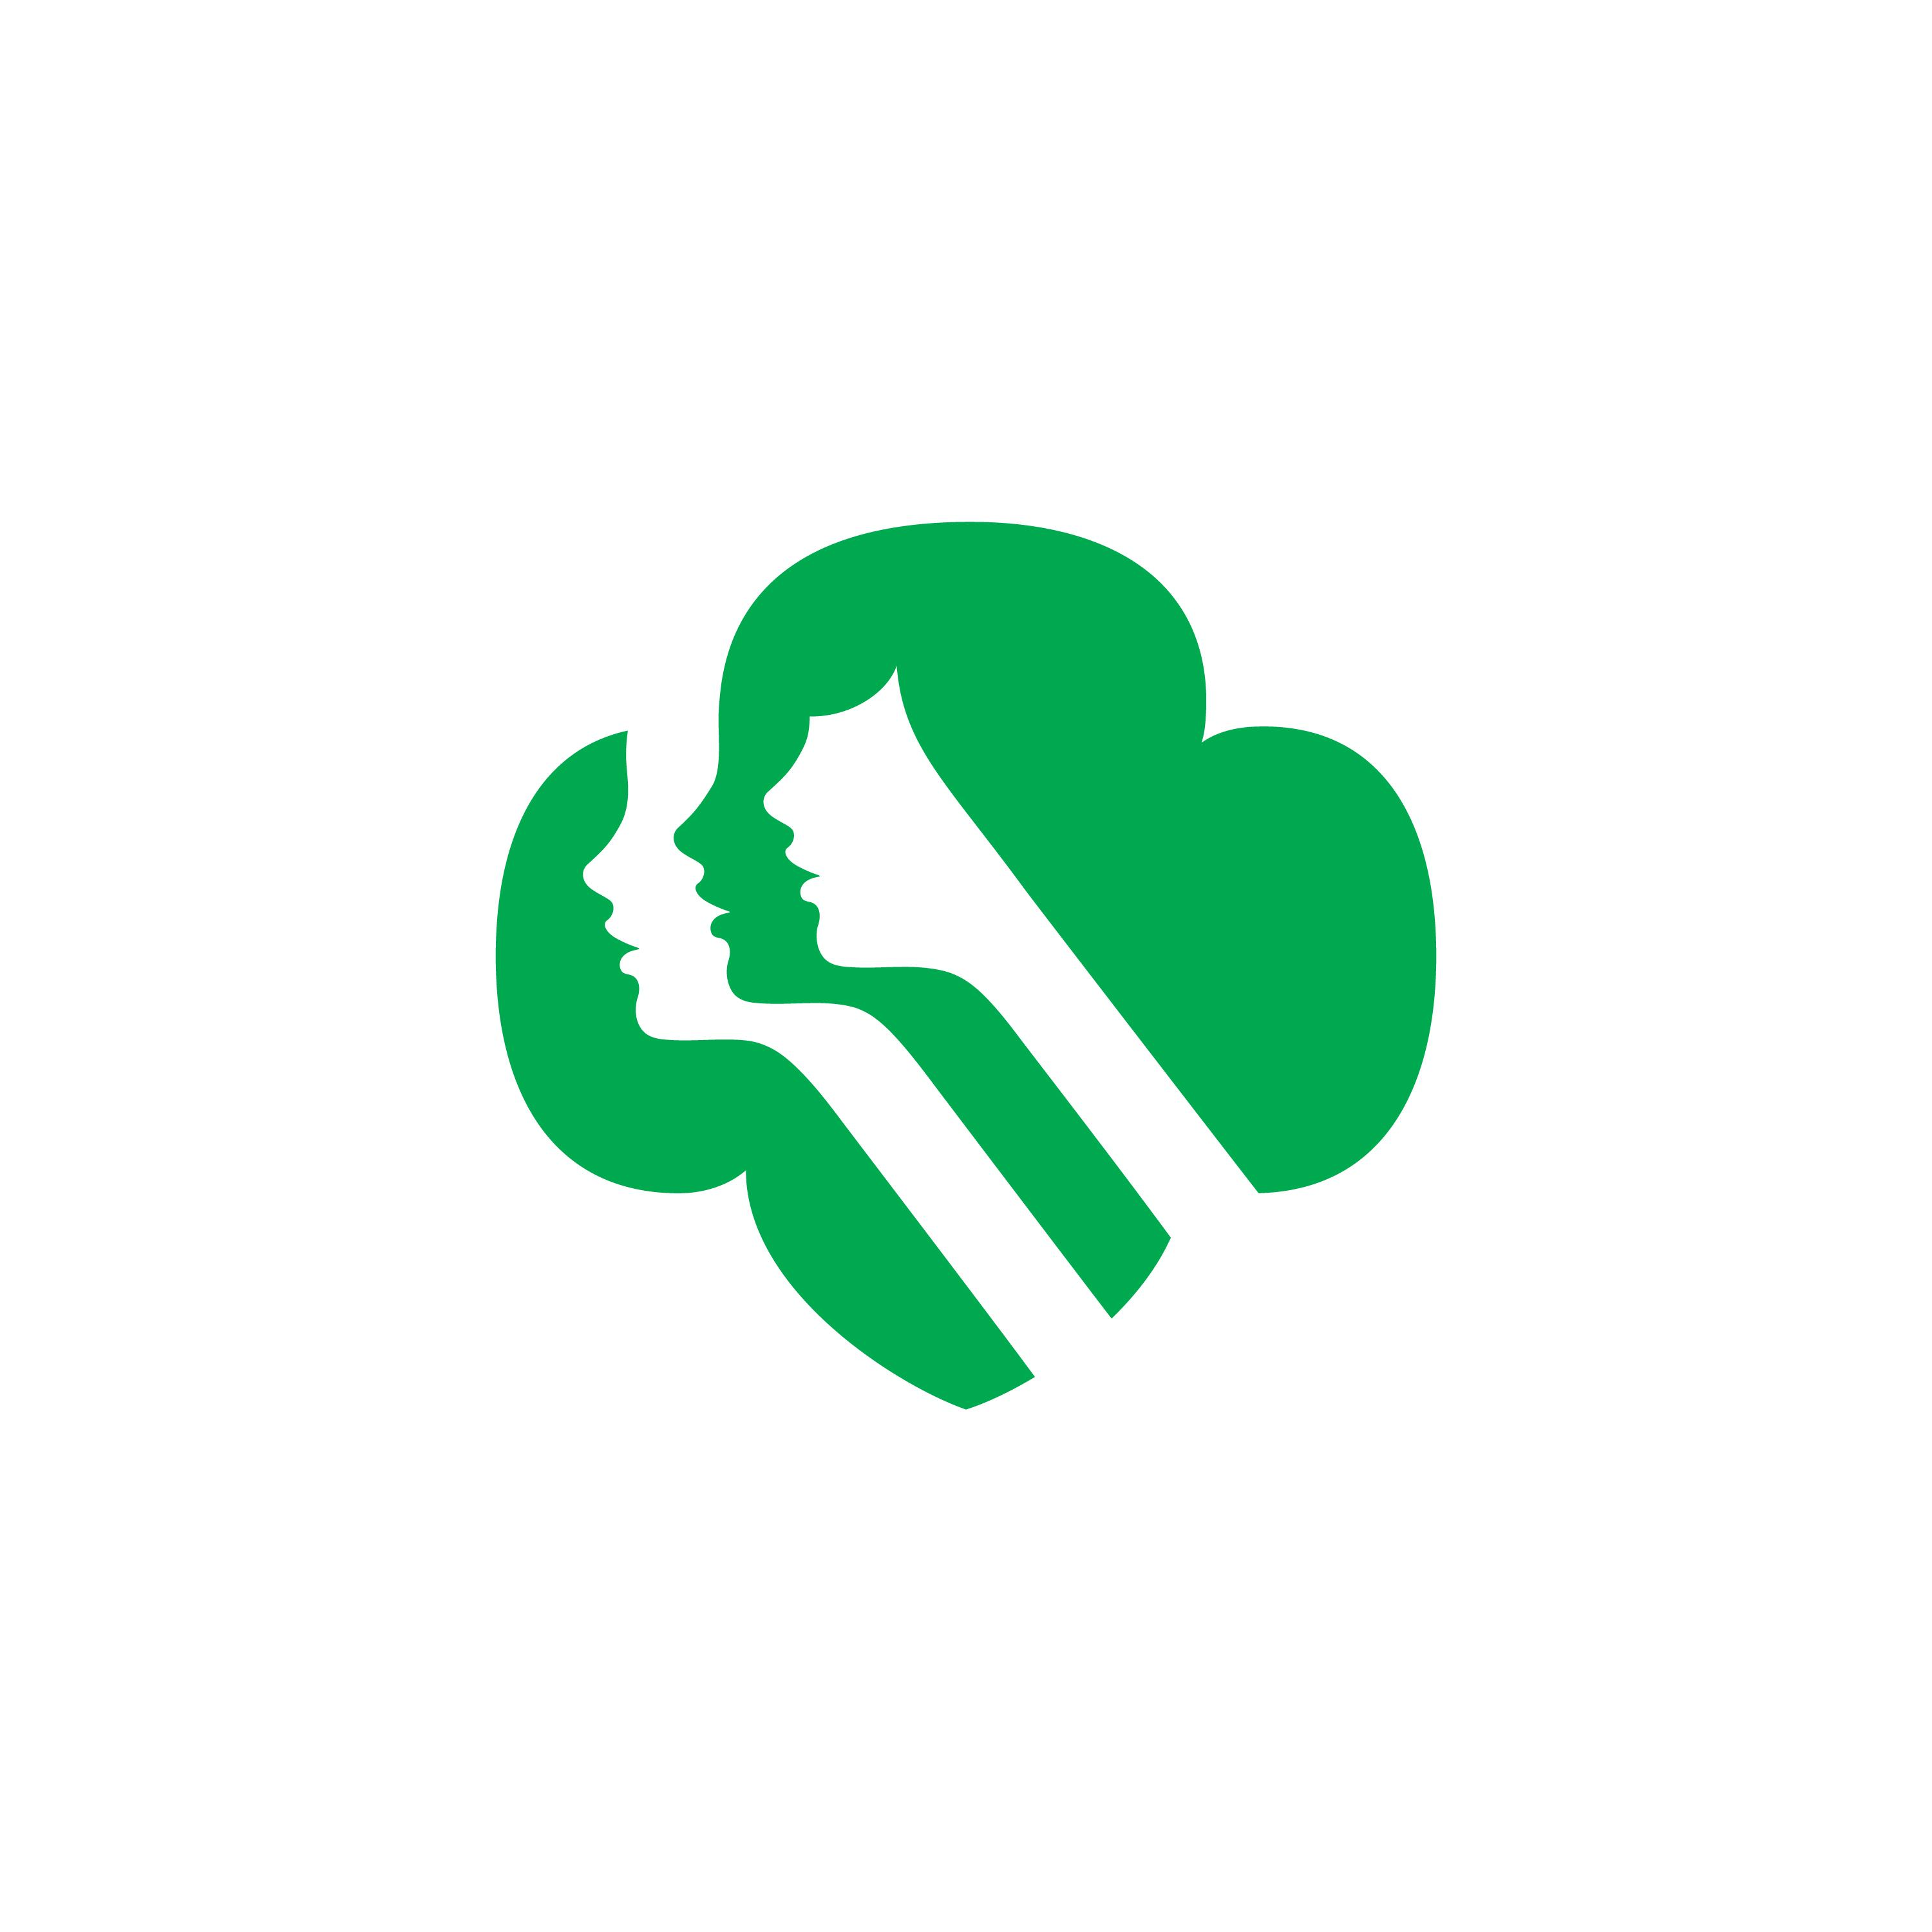 Girl Scout Logo Images | Free download on ClipArtMag